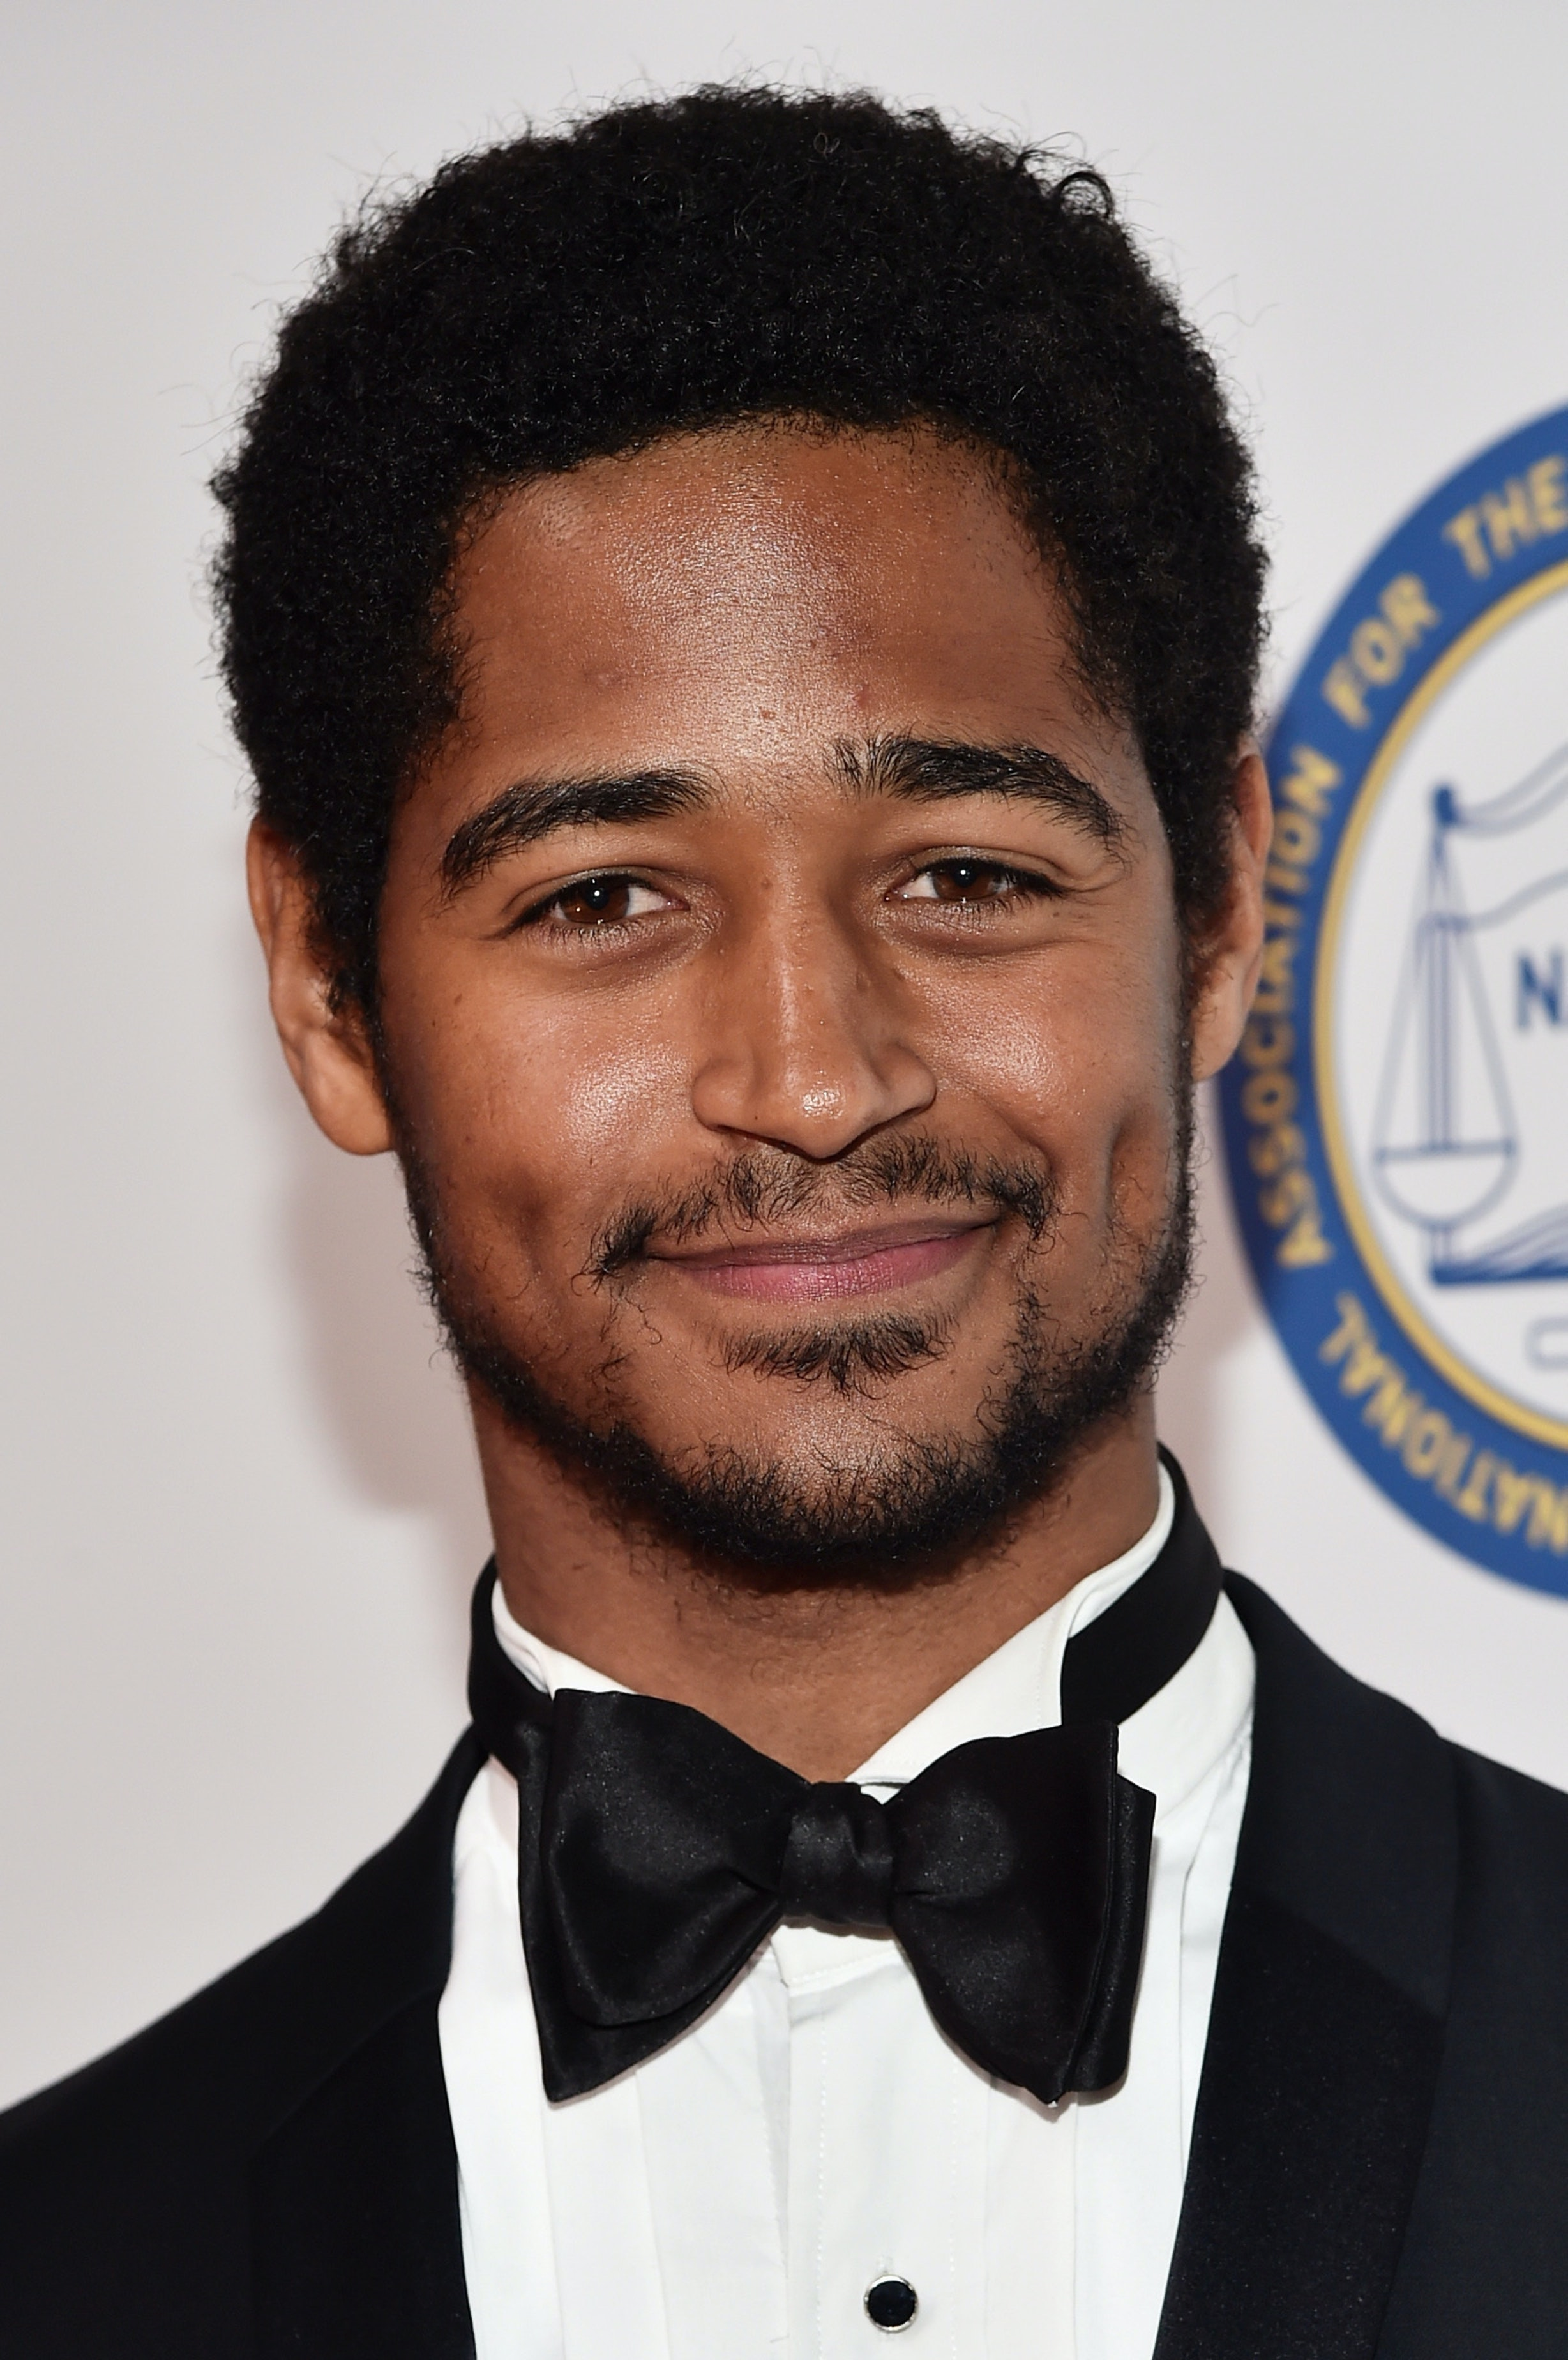 PASADENA, CA - FEBRUARY 05:  Actor Alfred Enoch attends the 47th NAACP Image Awards presented by TV One at Pasadena Civic Auditorium on February 5, 2016 in Pasadena, California.  (Photo by Alberto E. Rodriguez/Getty Images for NAACP Image Awards)